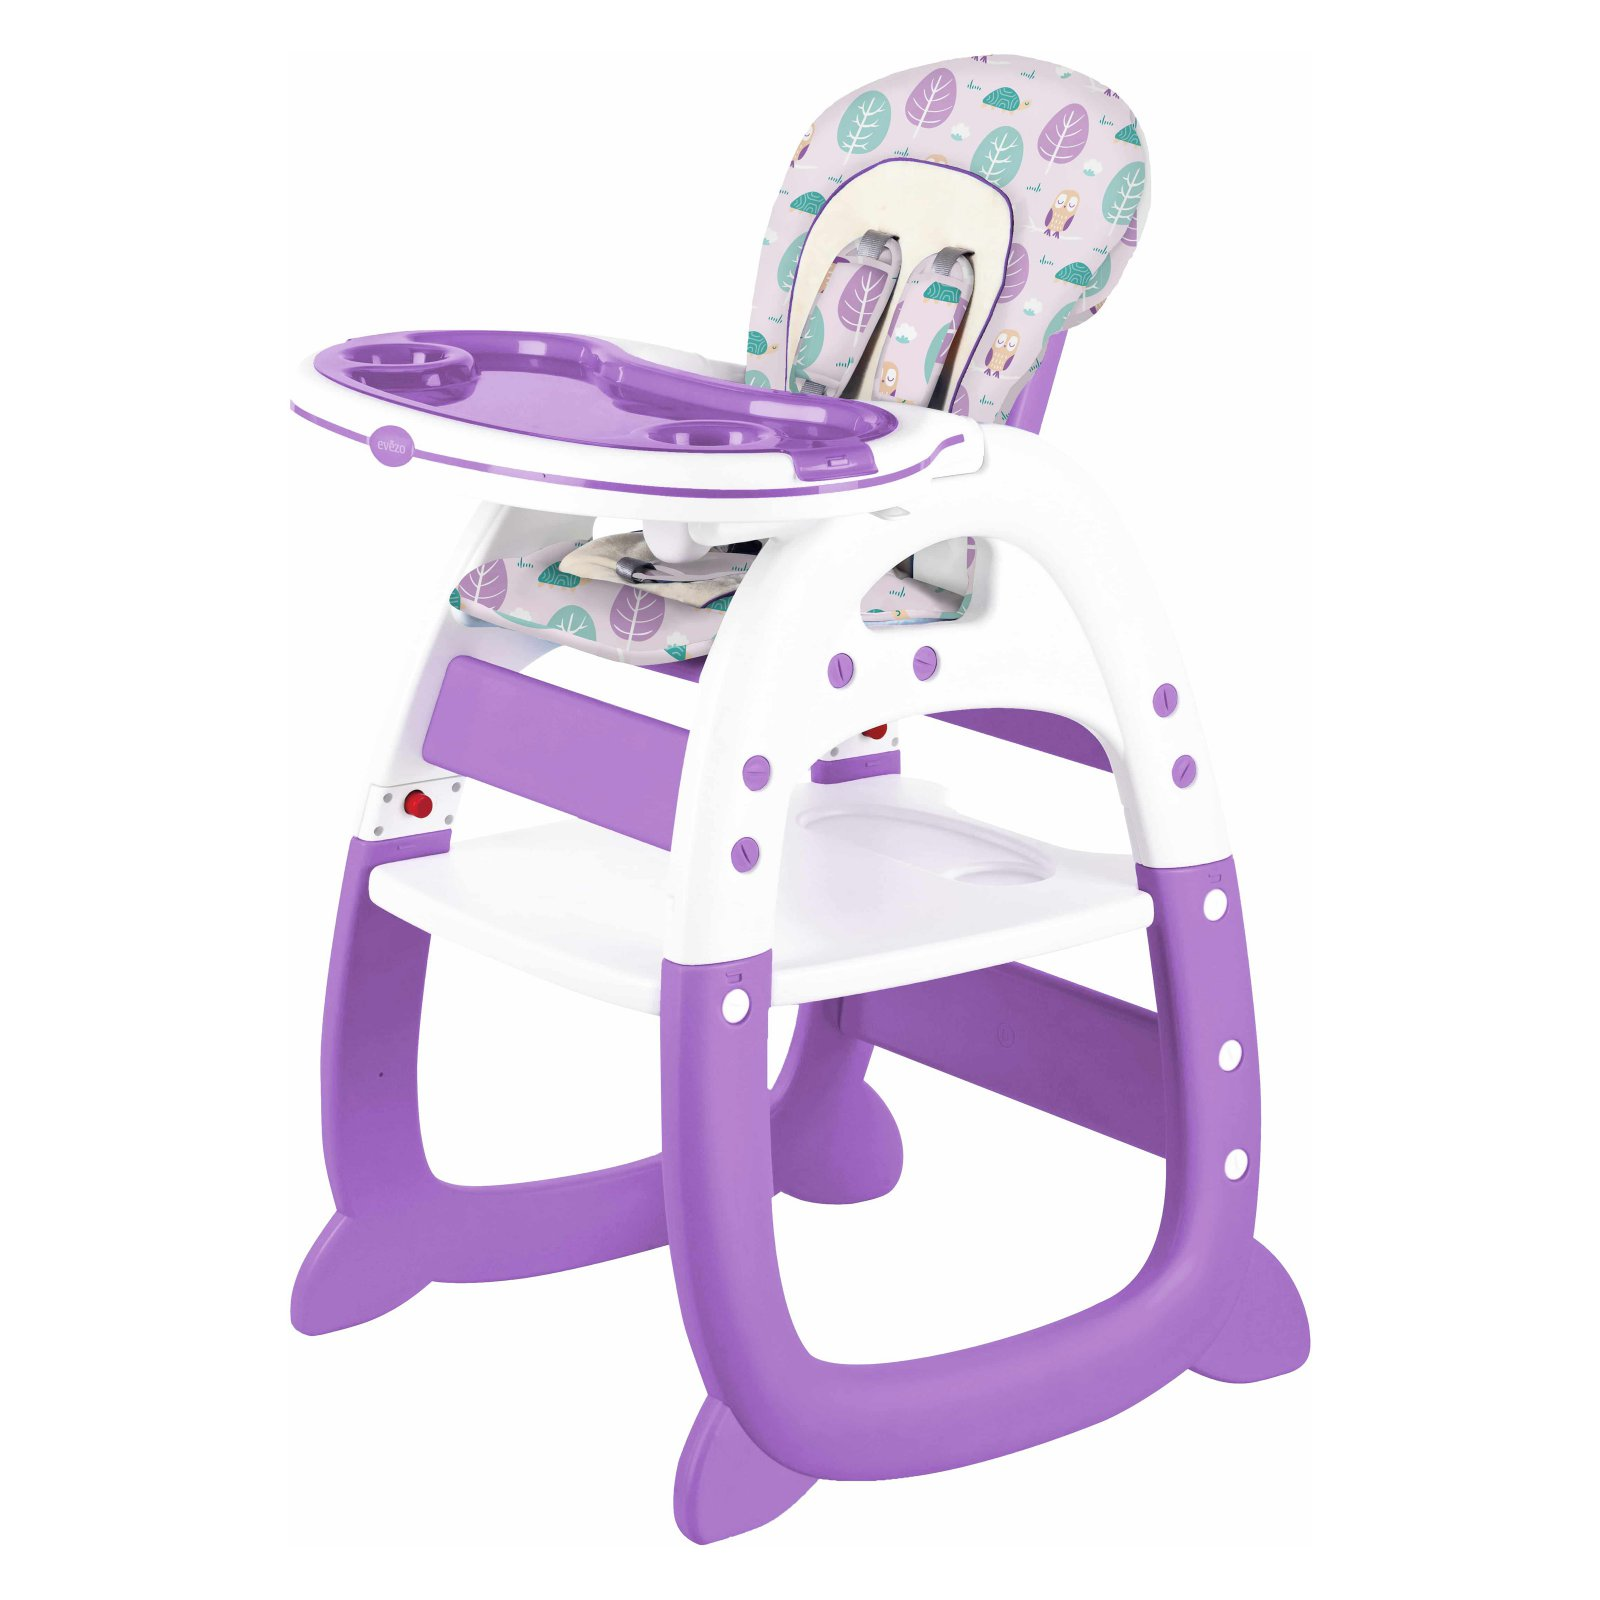 Evezo 2-in-1 High Chair Desk by Evezo